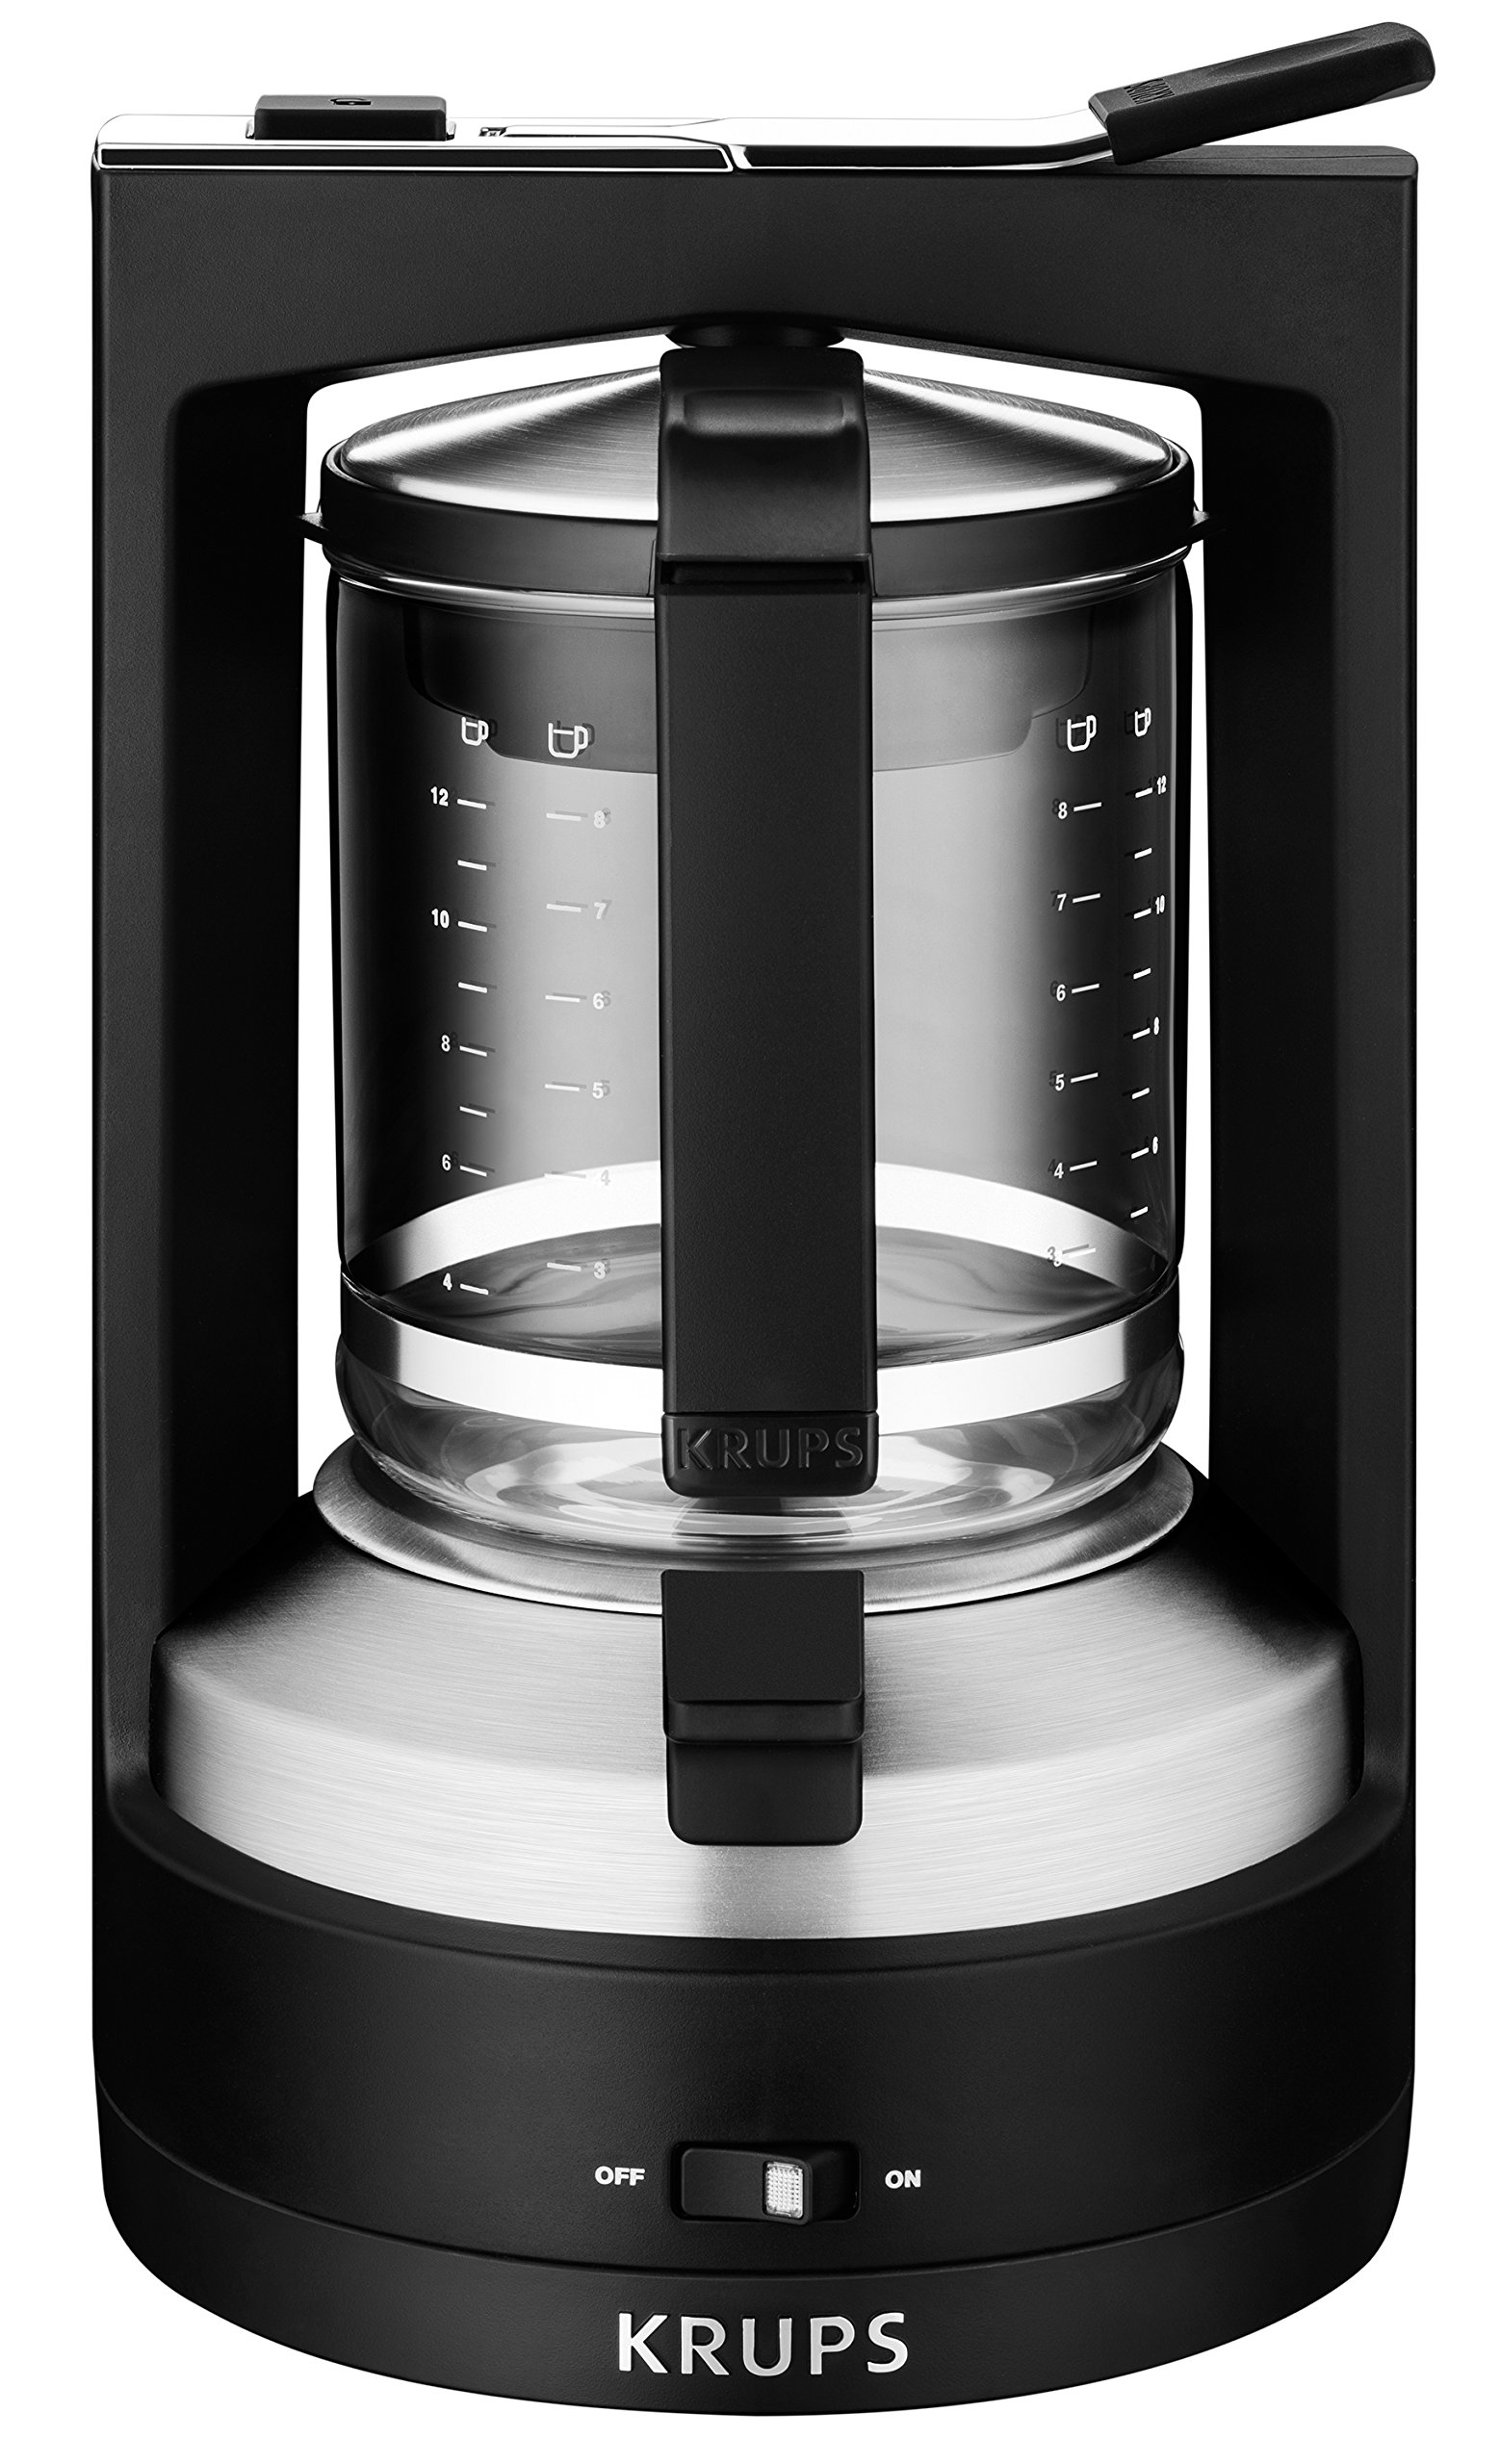 KRUPS KM4689 Moka Brewer Coffee Maker Machine with Permanent Filter and Glass Carafe, 10-Cup, Black by KRUPS